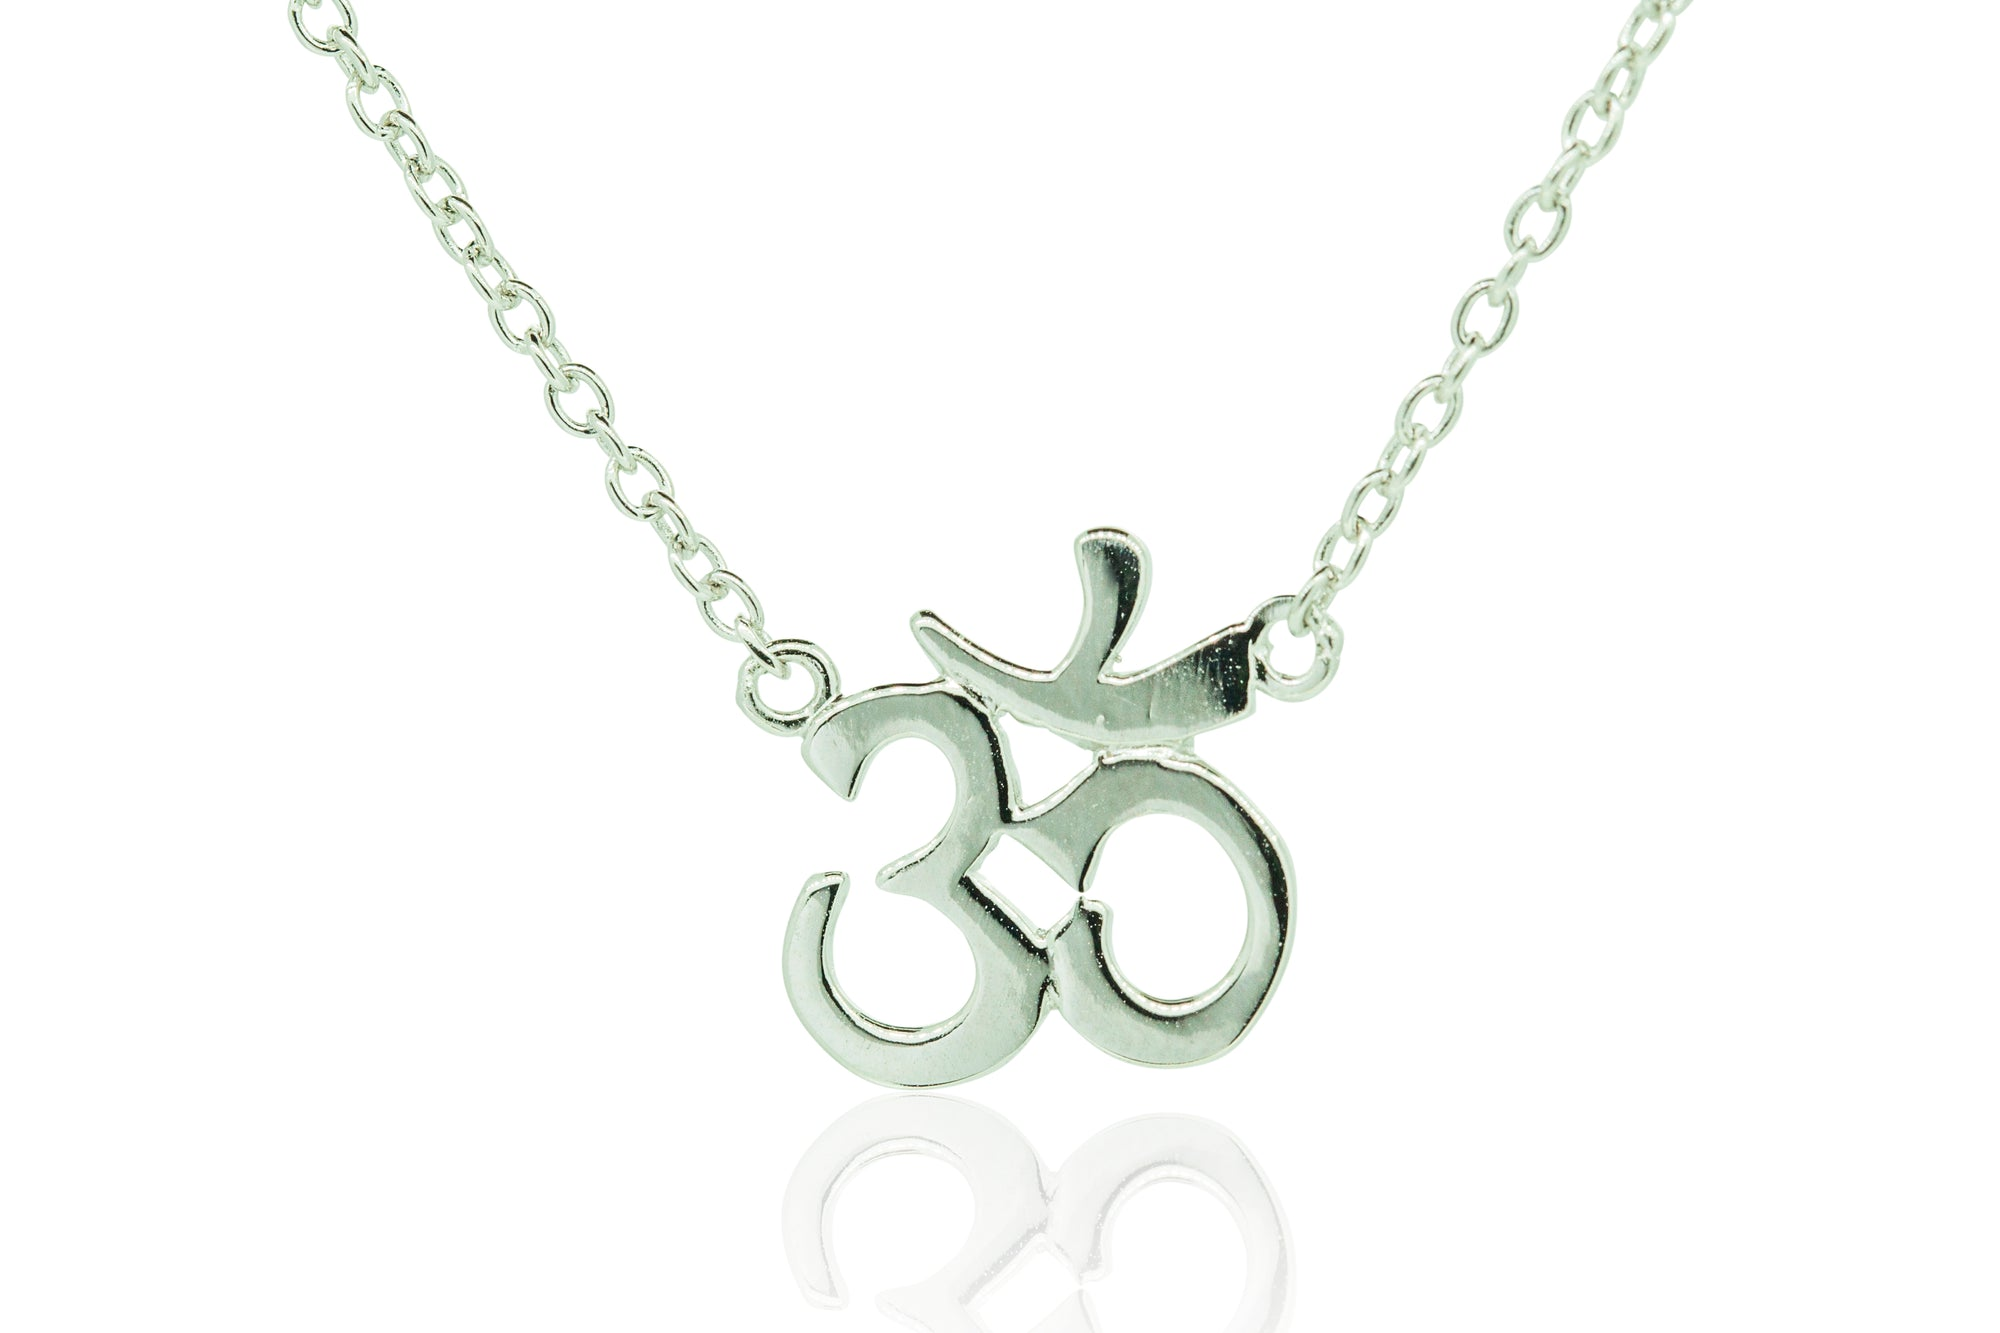 Aum faith necklace